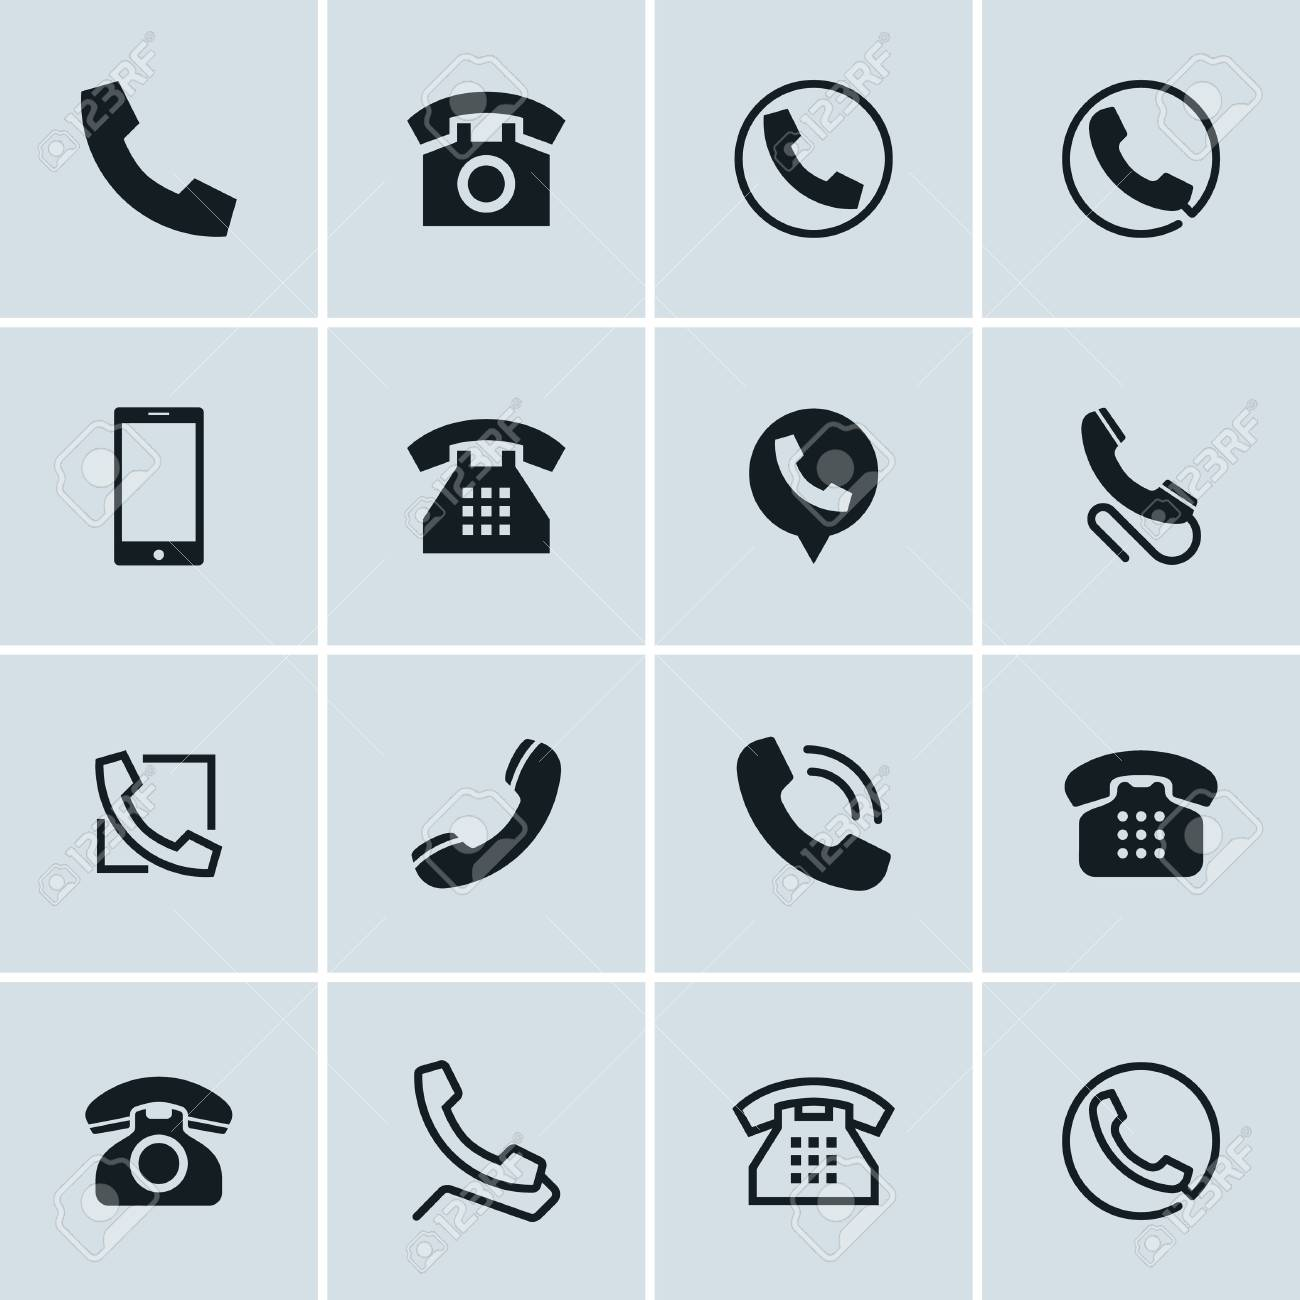 Phone Icons Set Of 16 Telephone Symbols Ideal For Website Design